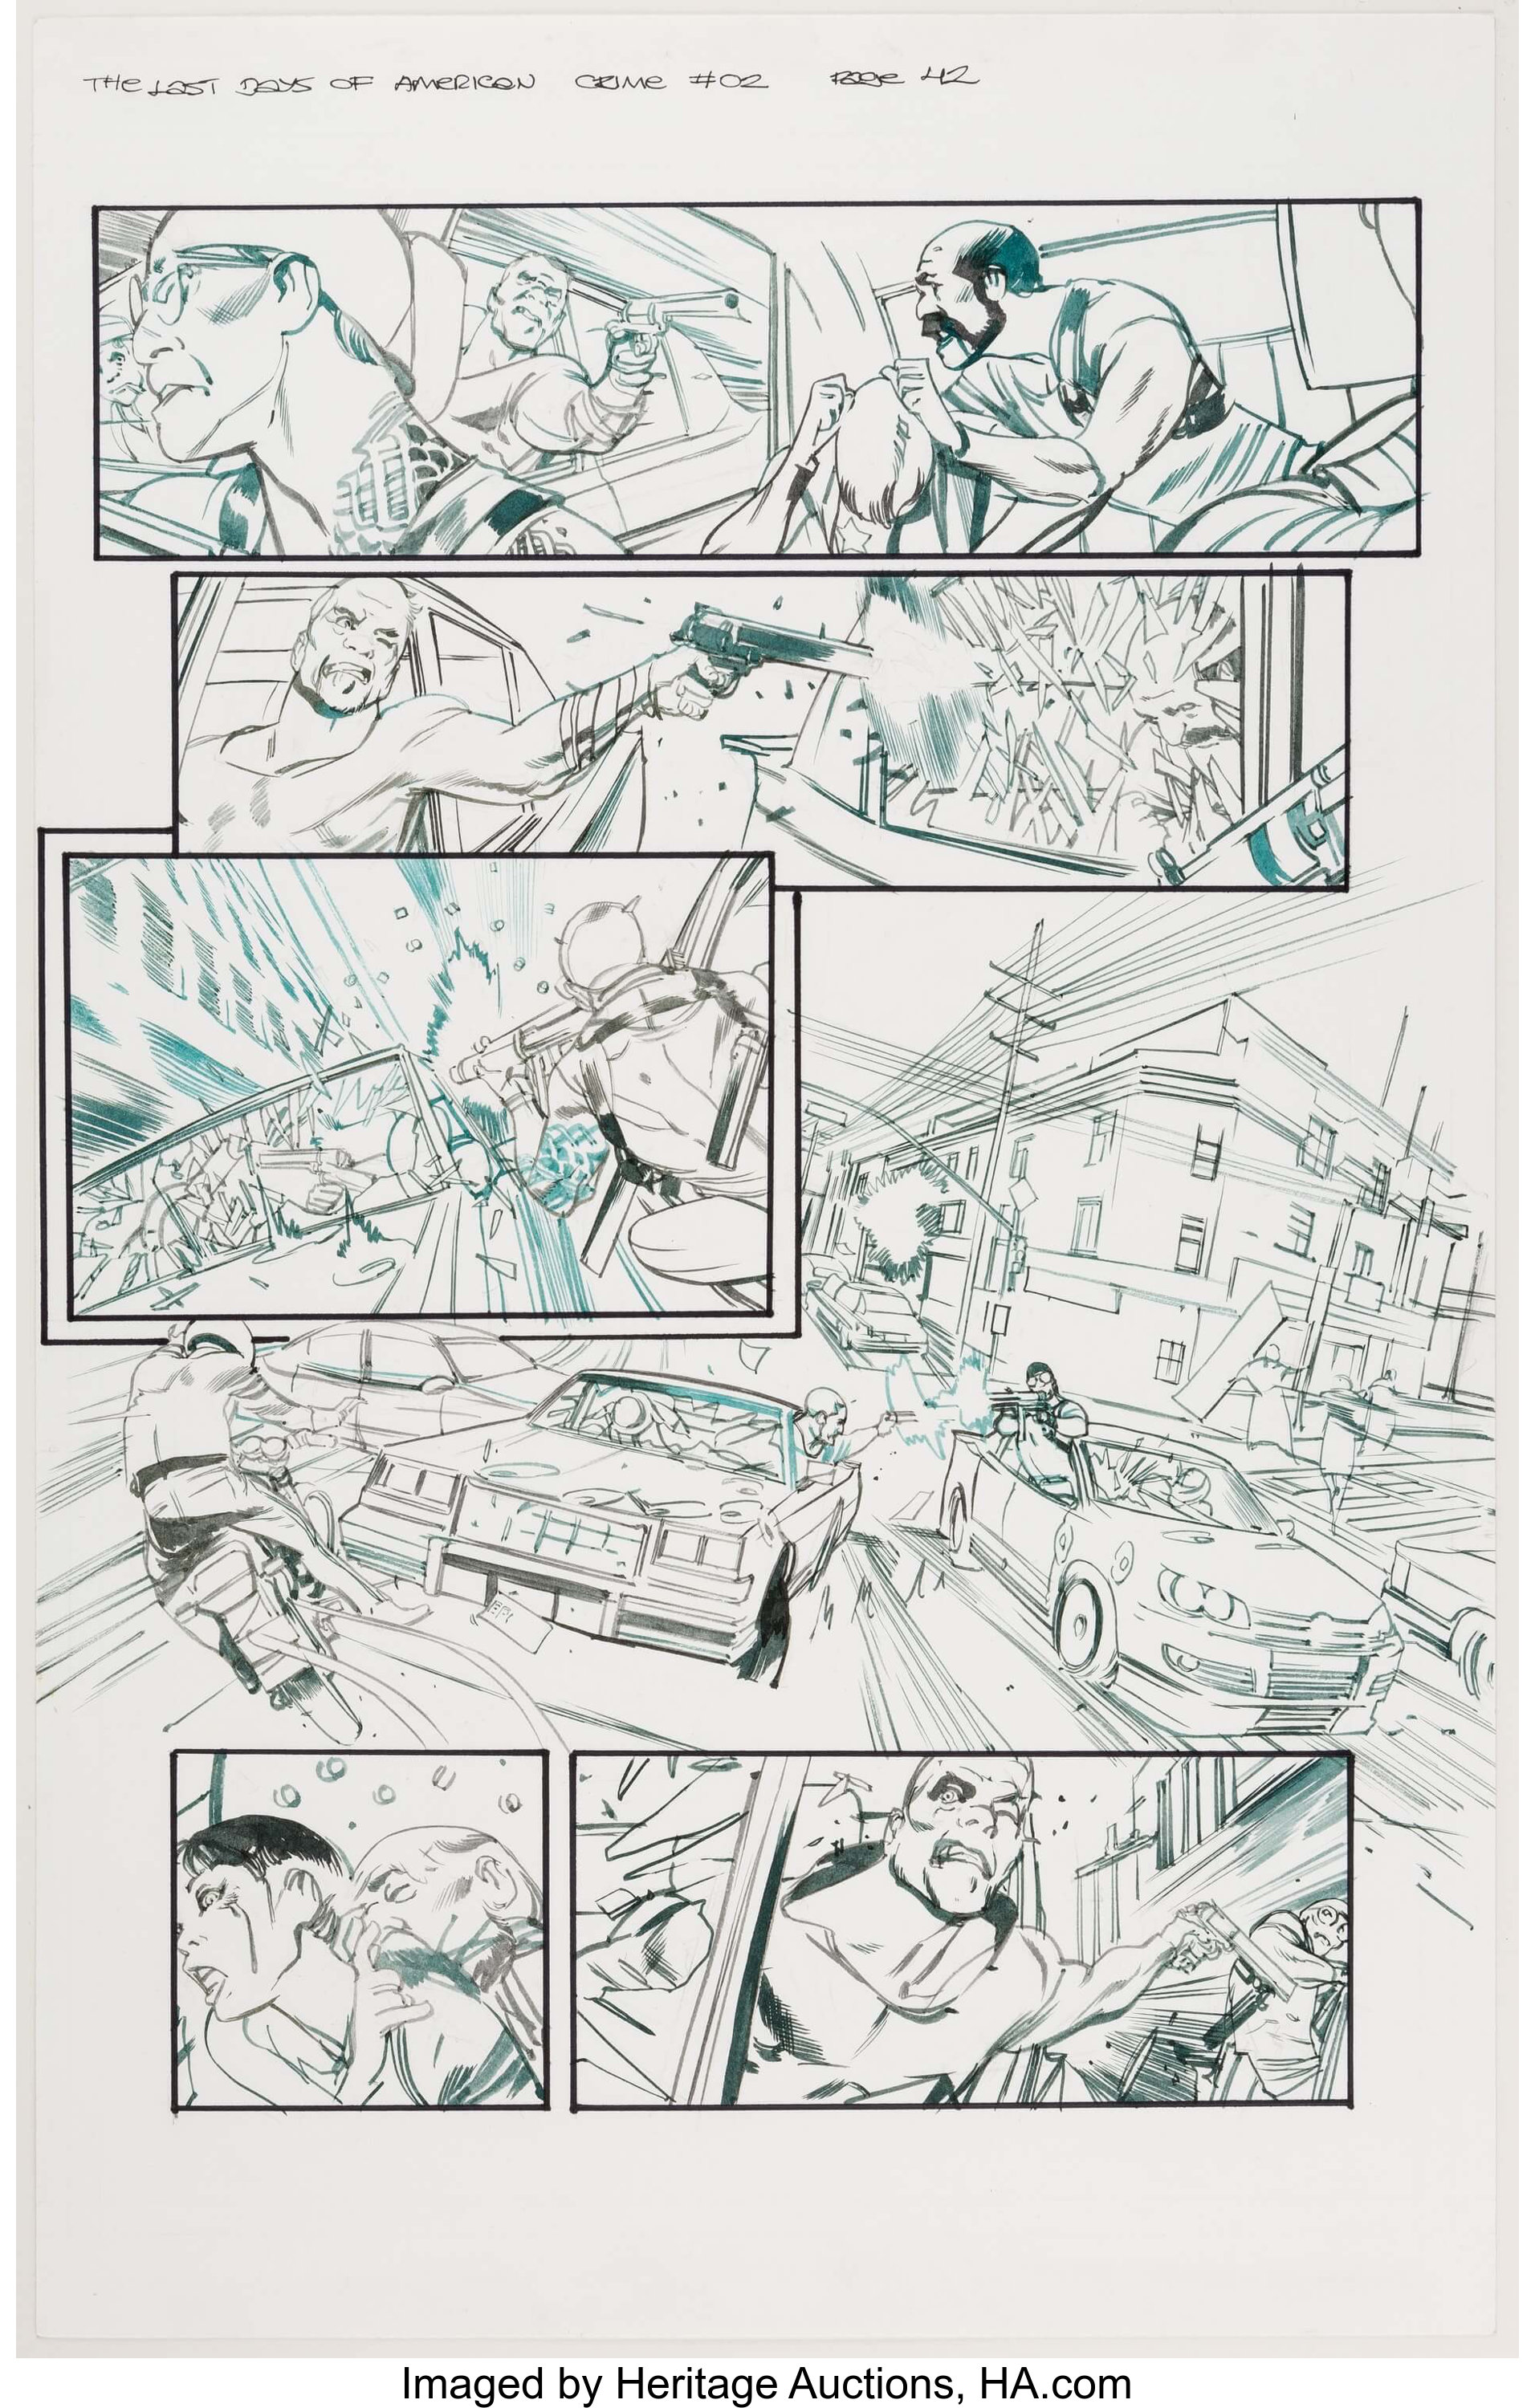 Greg Tocchini The Last Days Of American Crime 2 Page 42 Original Lot 15210 Heritage Auctions